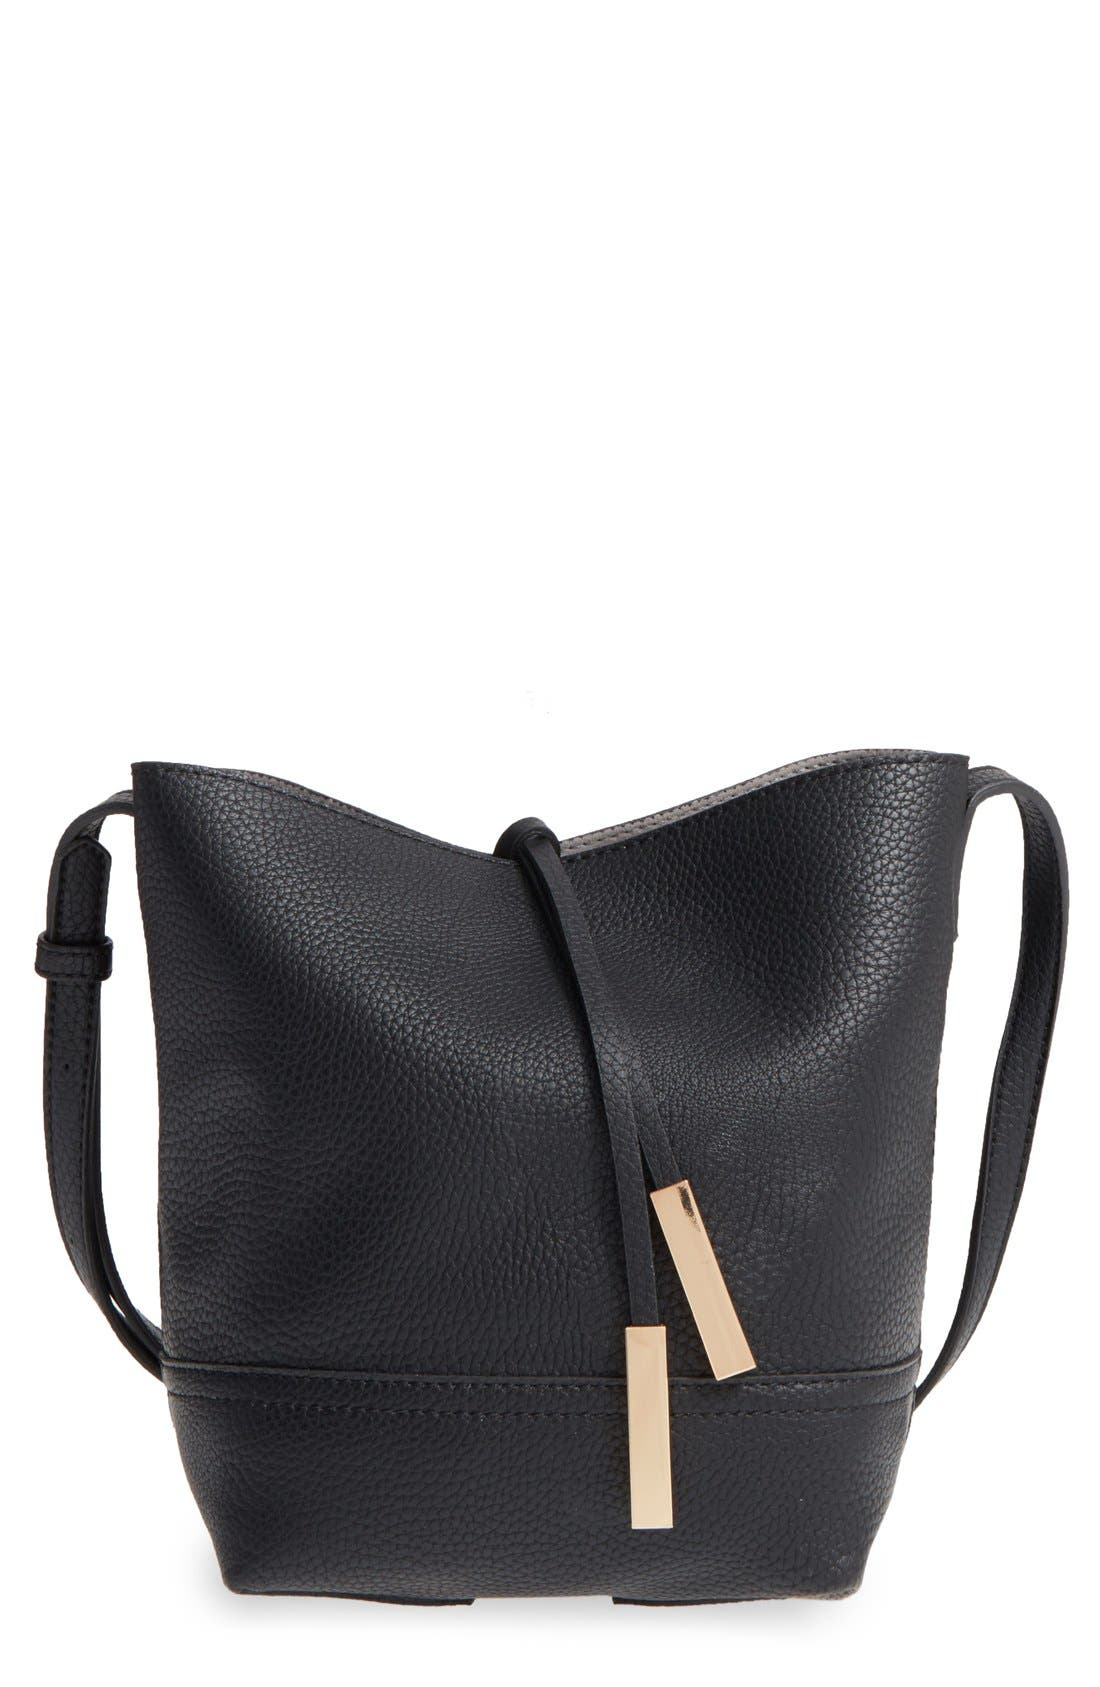 Alternate Image 1 Selected - Street Level Faux Leather Bucket Bag